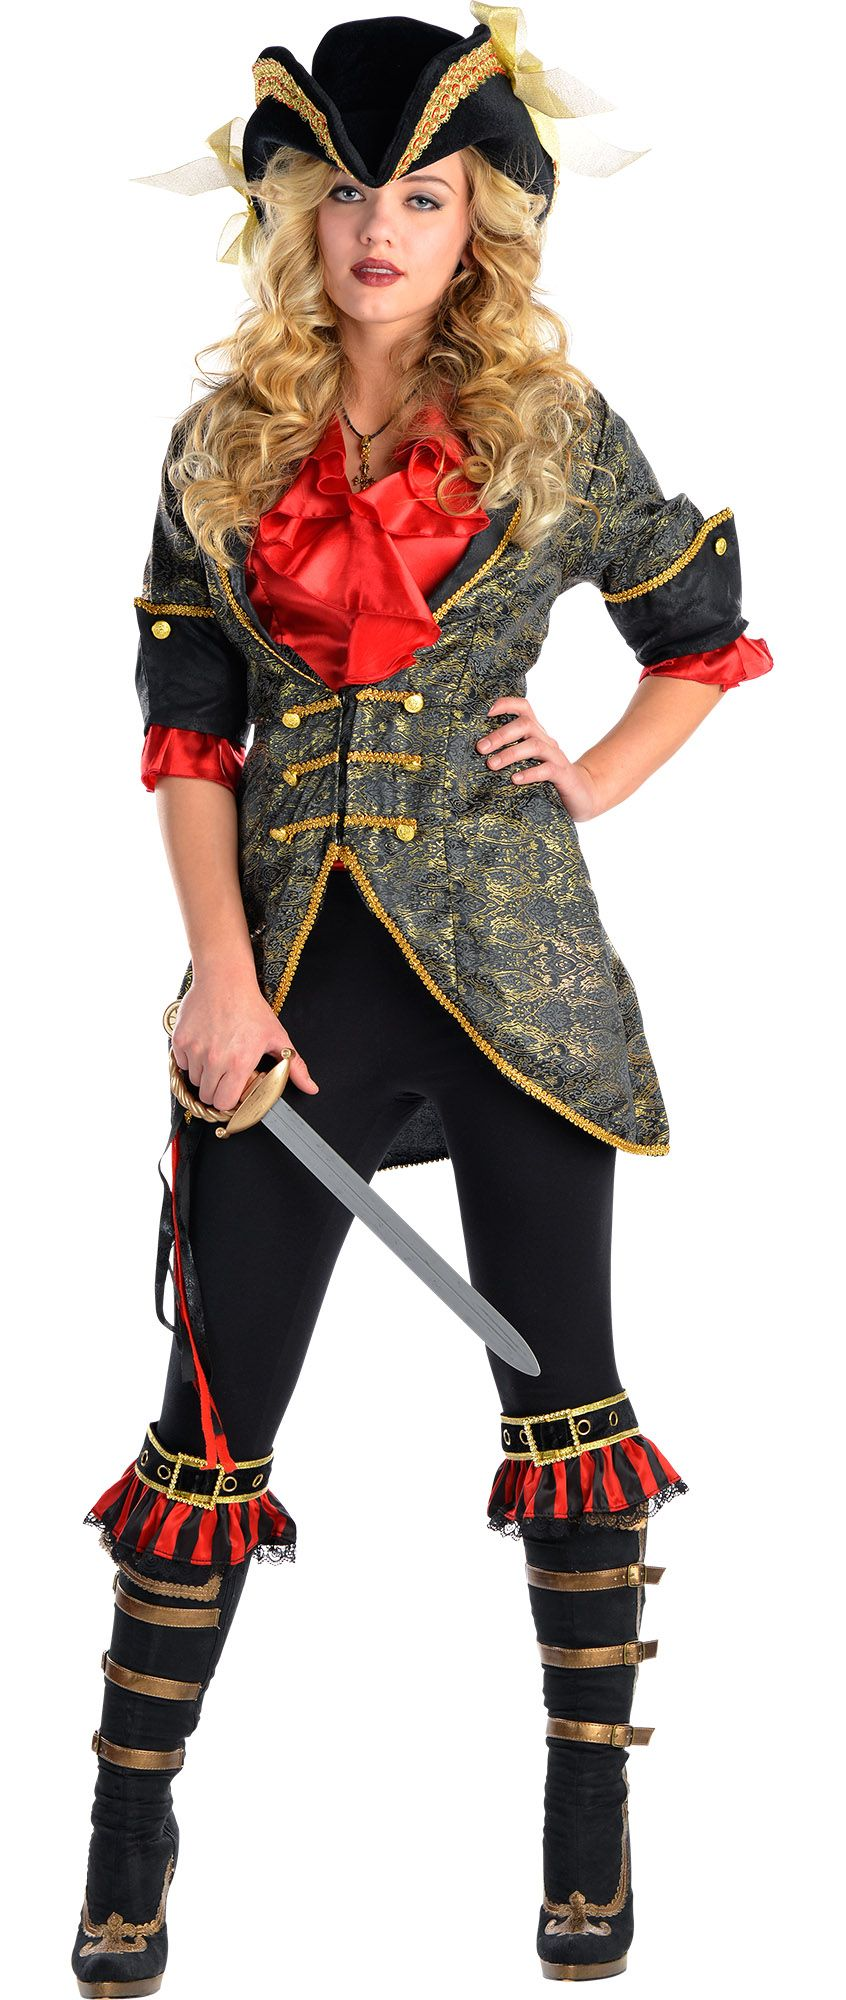 Create Your Own Women's High Seas Pirate Costume